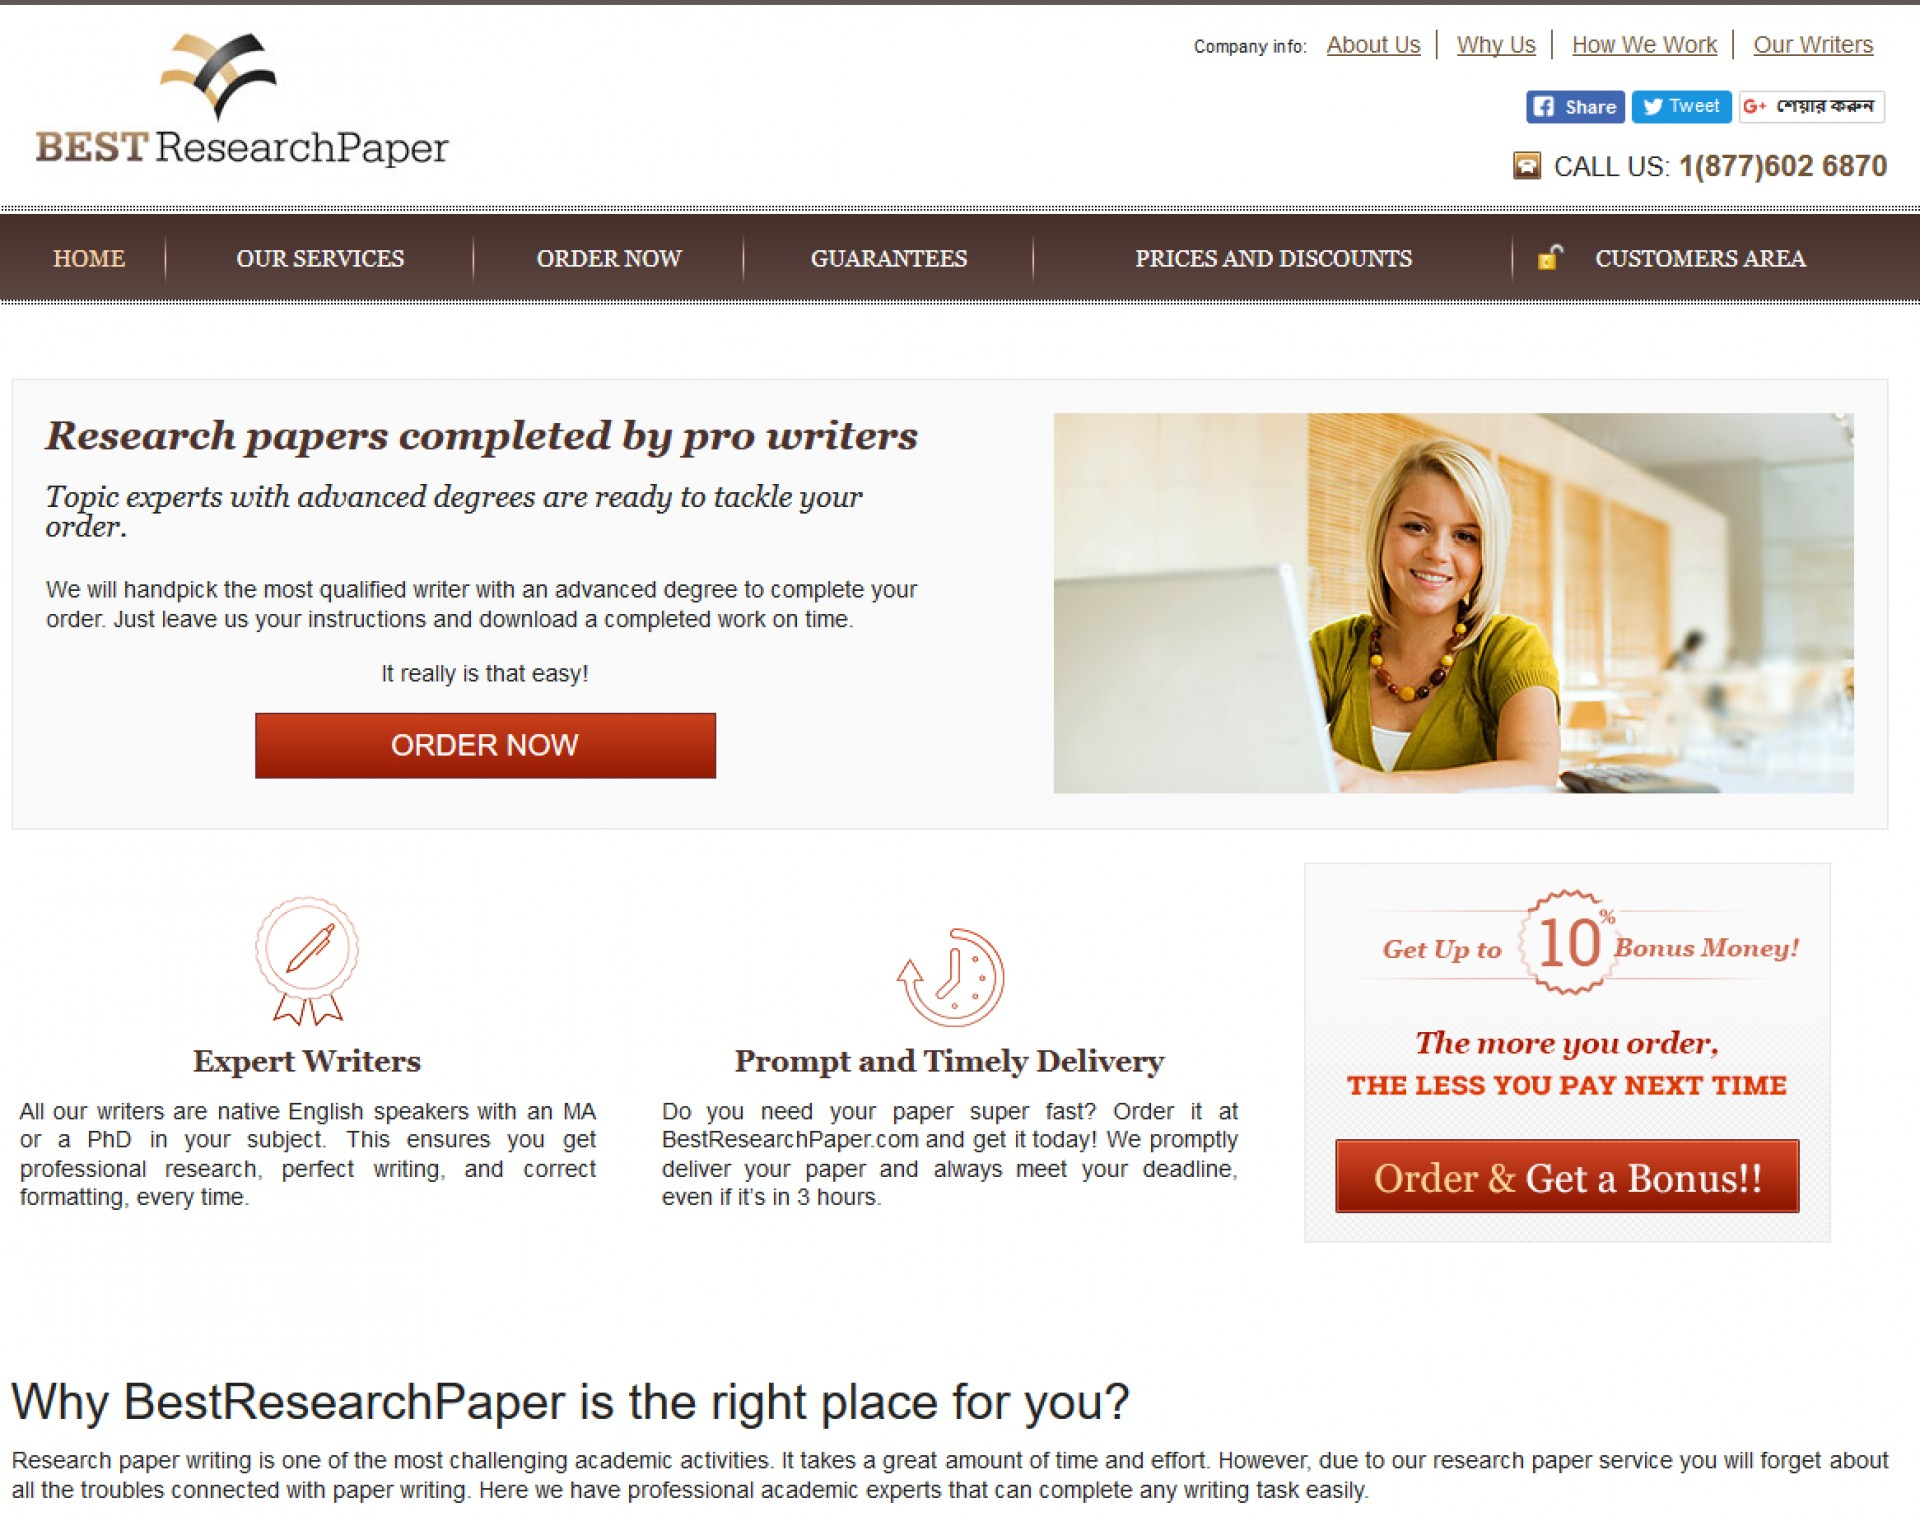 007 Best Research Paper Writing Services In Usa Top 1920